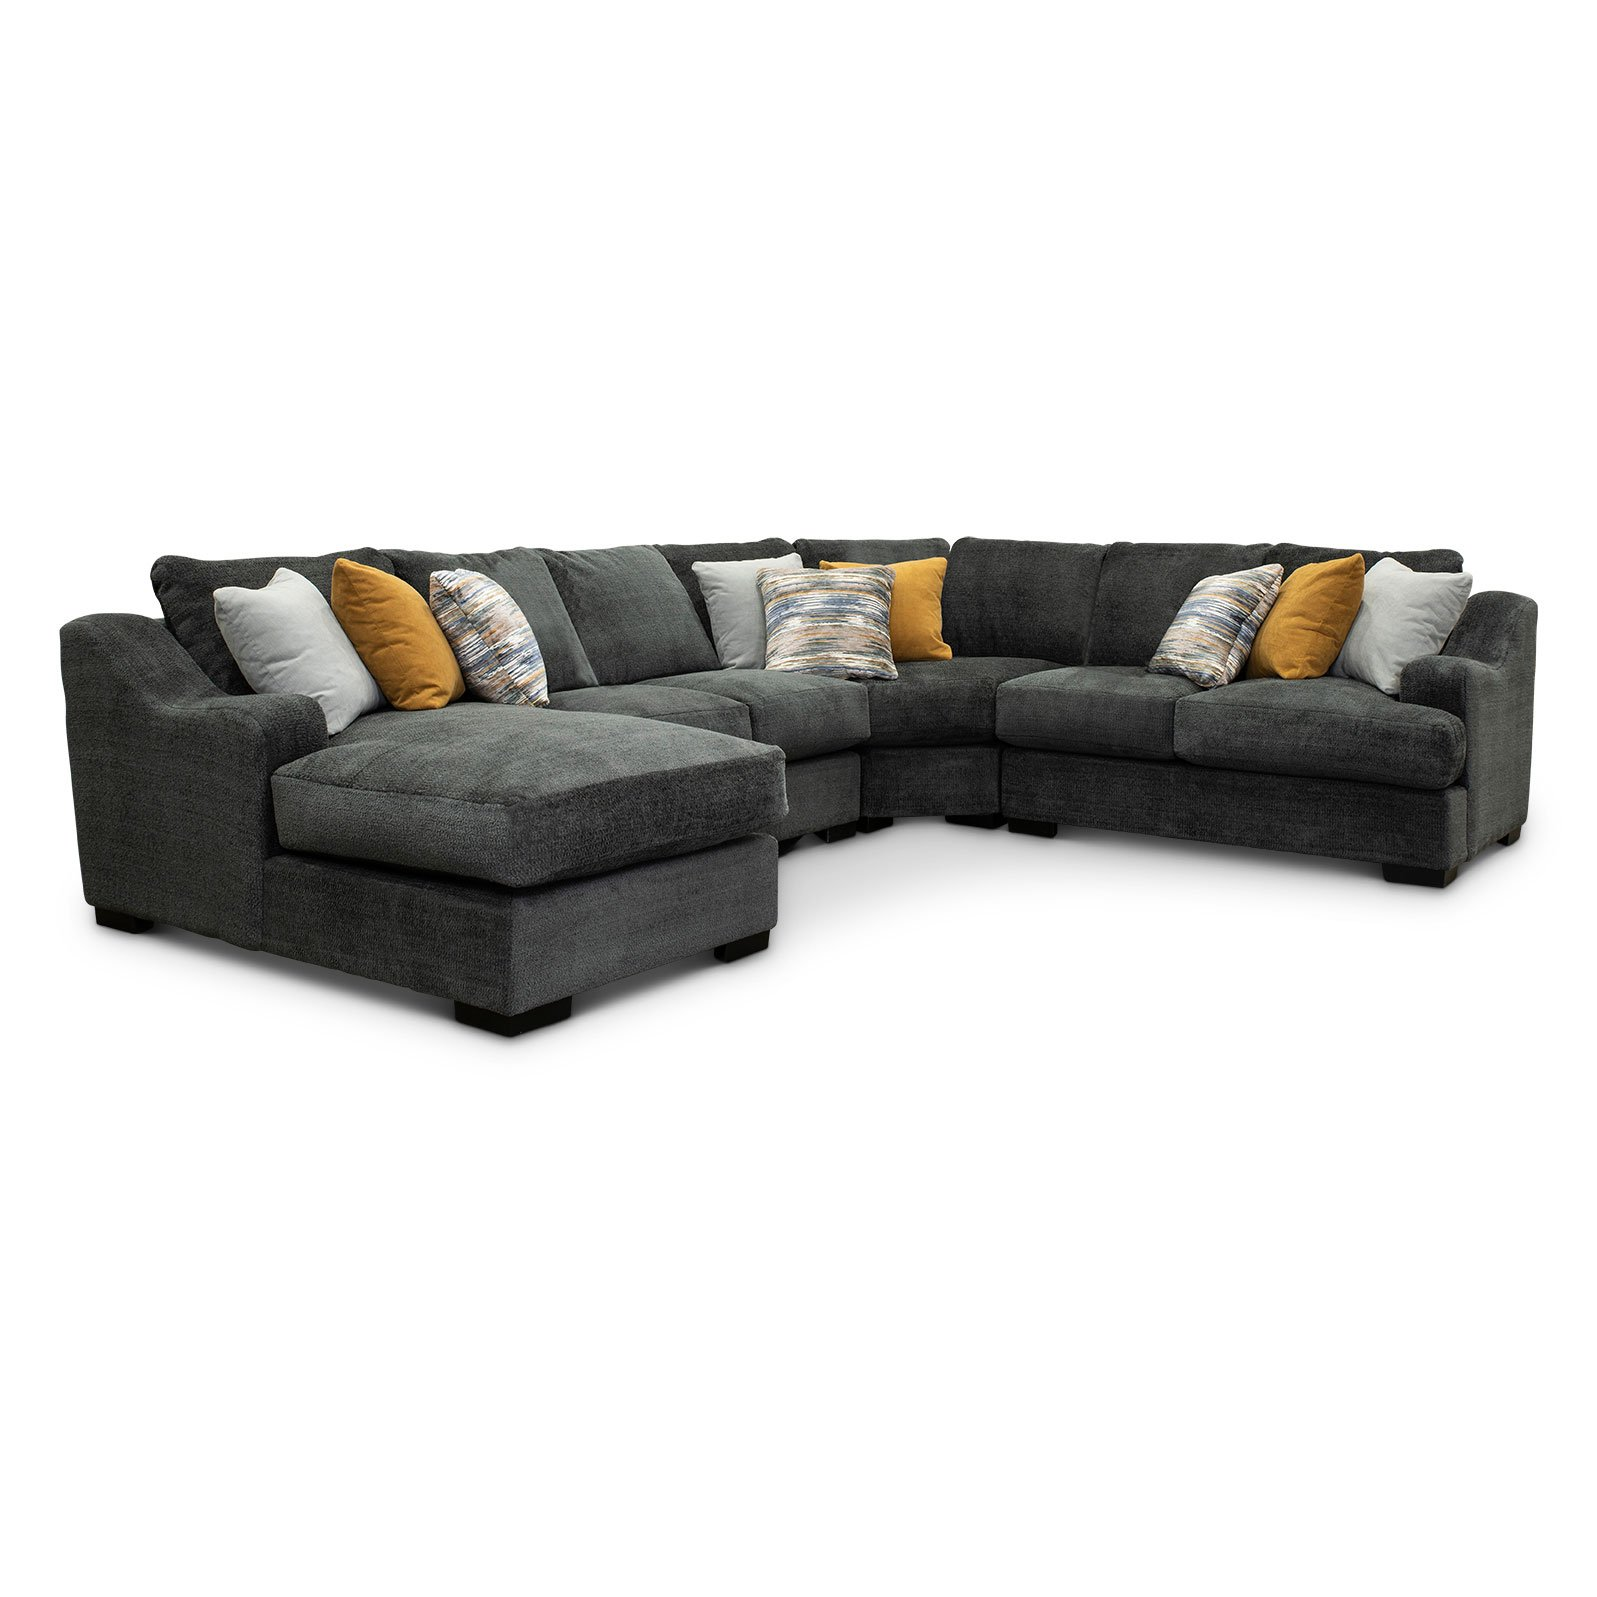 Graphite Gray 4 Piece Sectional Sofa With Laf Chaise Challenger Rc Willey Furniture Store